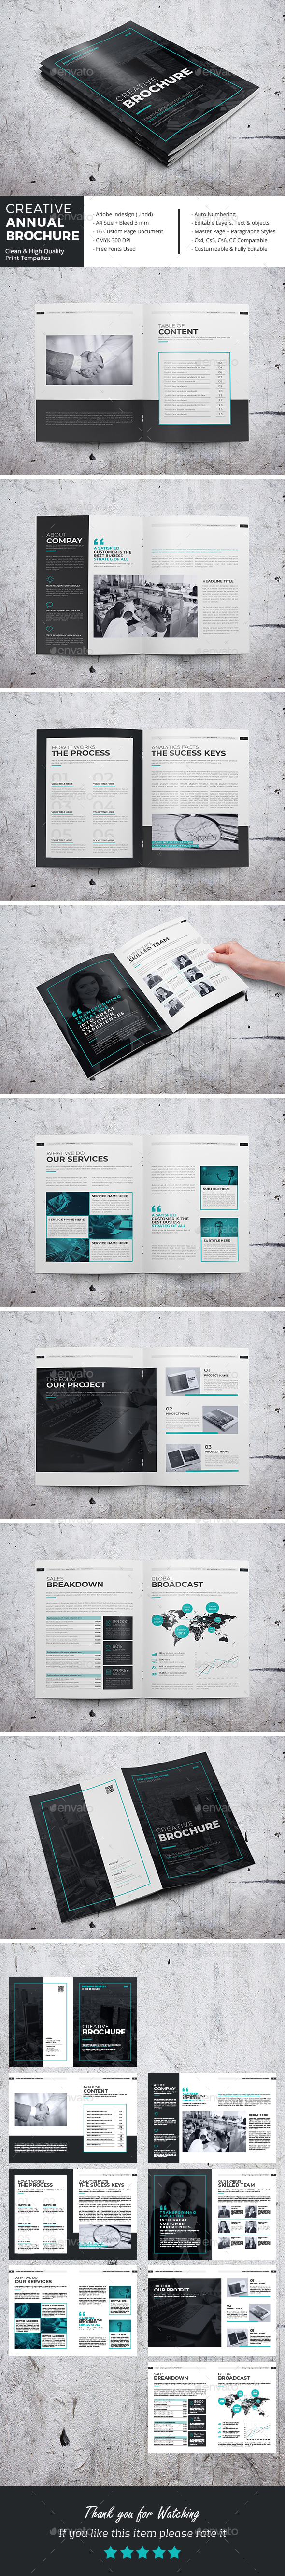 GraphicRiver Creative Annual Brochure V2 21102262